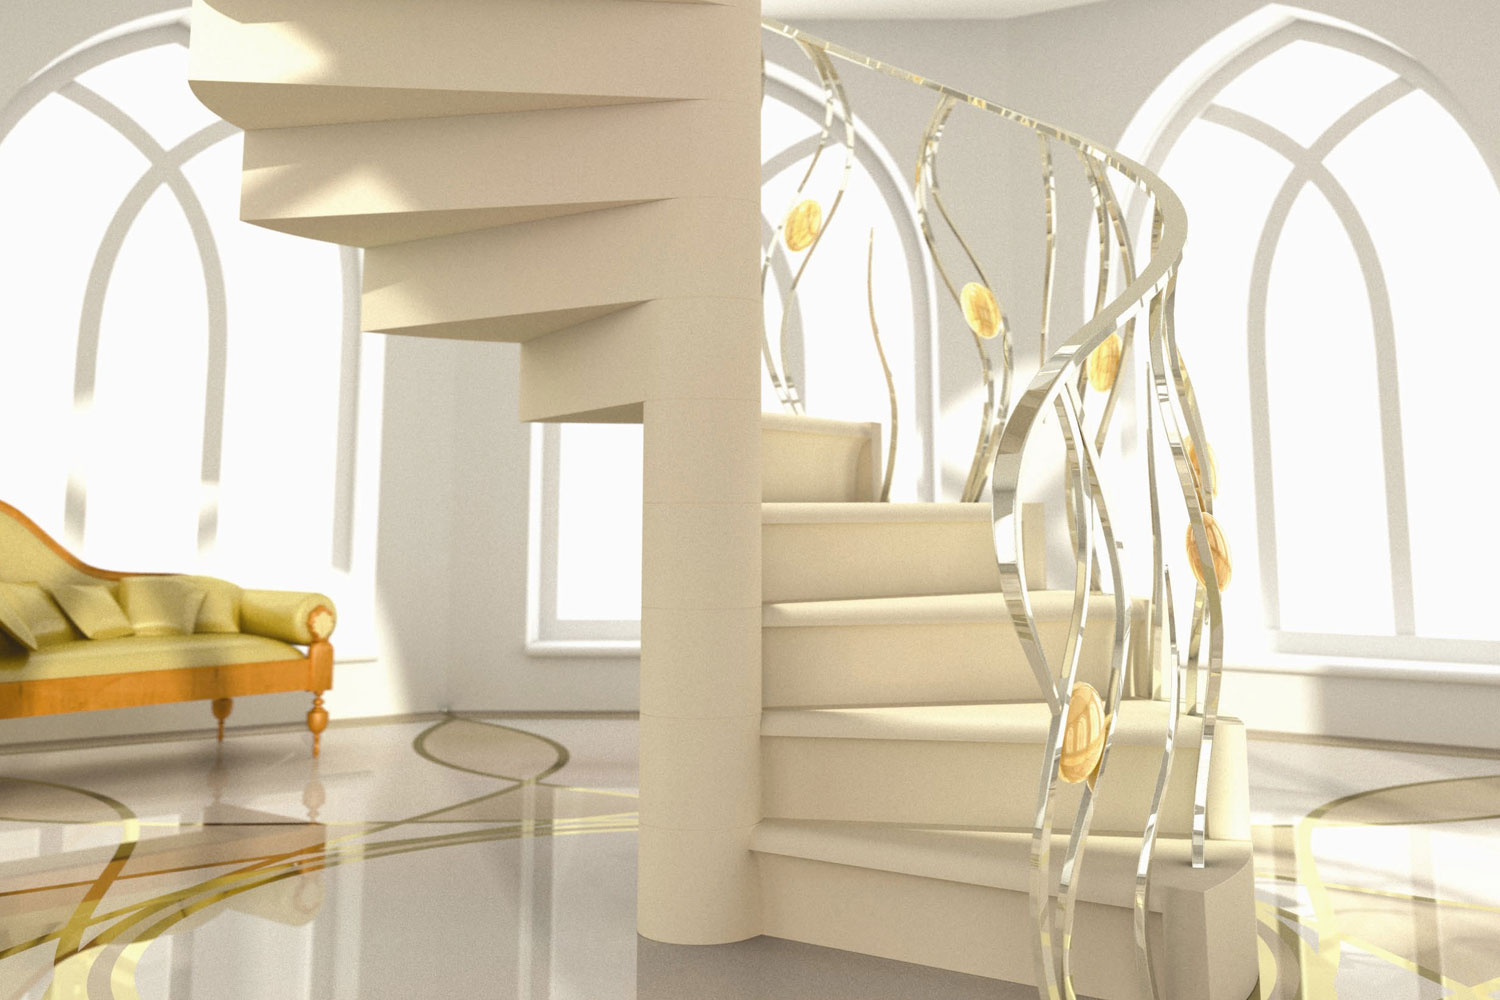 20. Portland stone spiral staircase with chrome and brass balustrade – Derbyshire